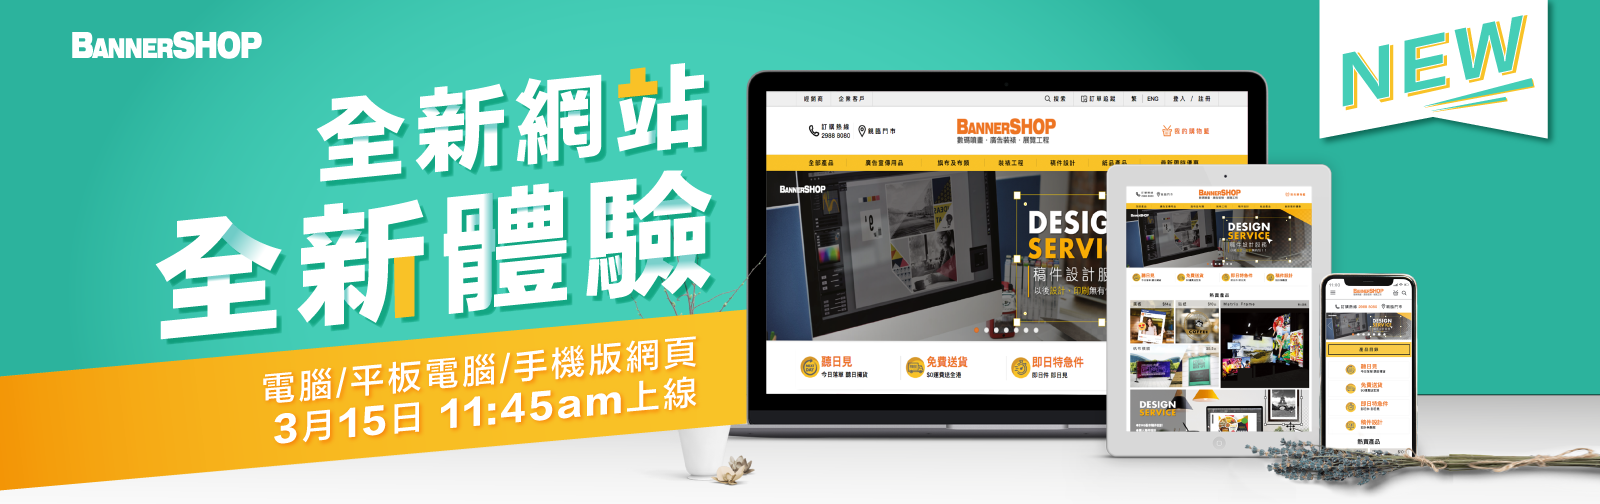 BannerSHOP - with Responsive Web Design